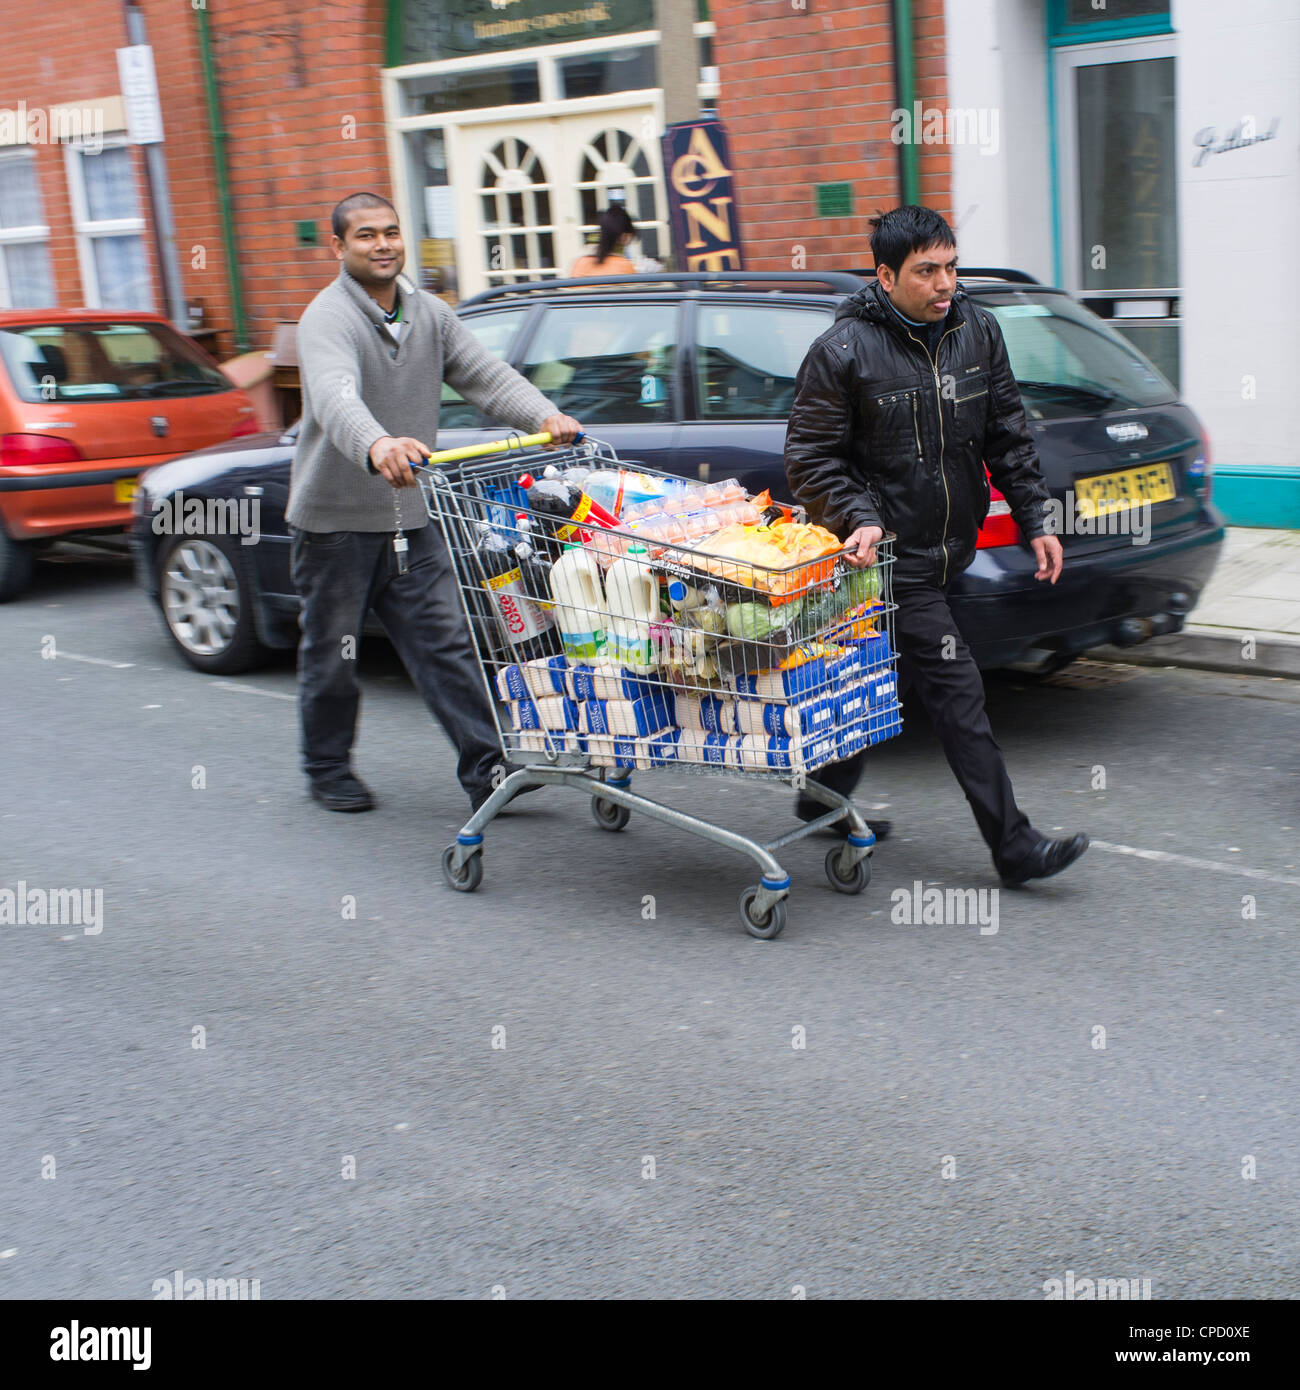 Two young men pushing a shopping trolley full of food down a street, UK - Stock Image